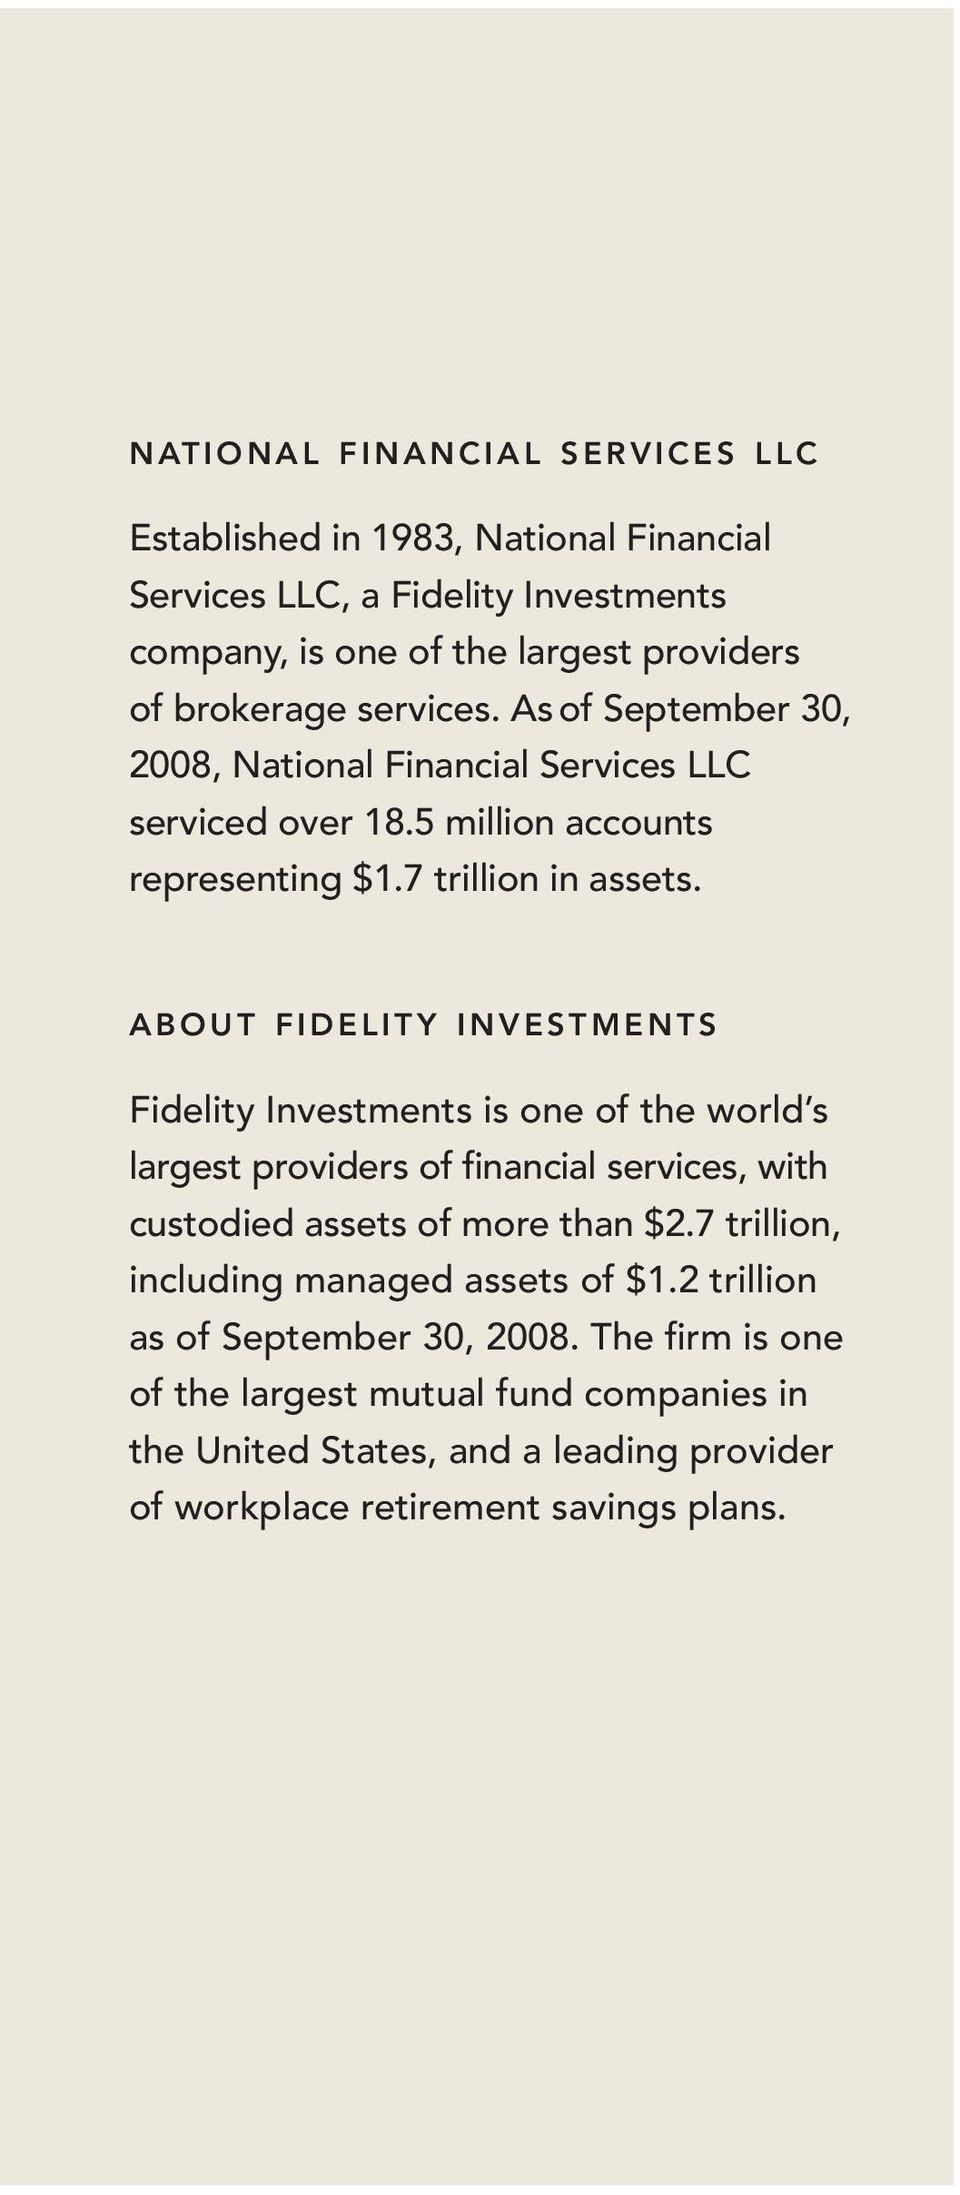 ABOUT FIDELITY INVESTMENTS Fidelity Investments is one of the world s largest providers of financial services, with custodied assets of more than $2.